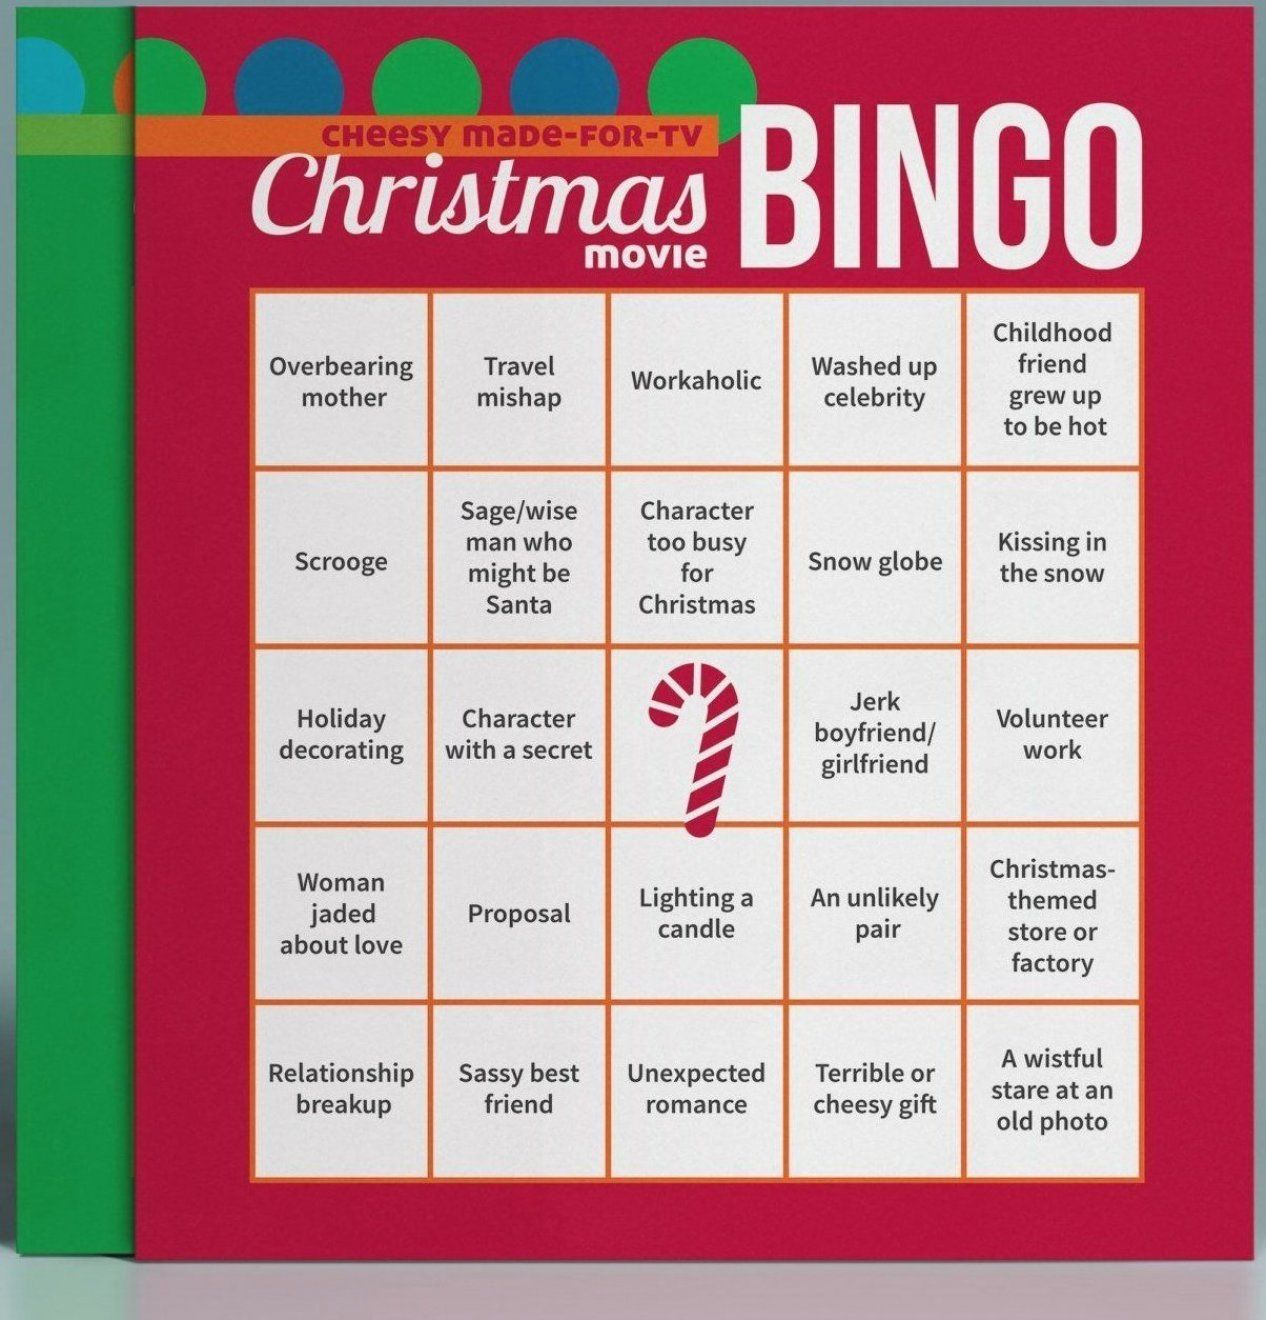 A fun game to play while watching cheesy Christmas movie marathons  A great gift idea for friends  #christmasmovies #christmas #giftideas #christmasgames